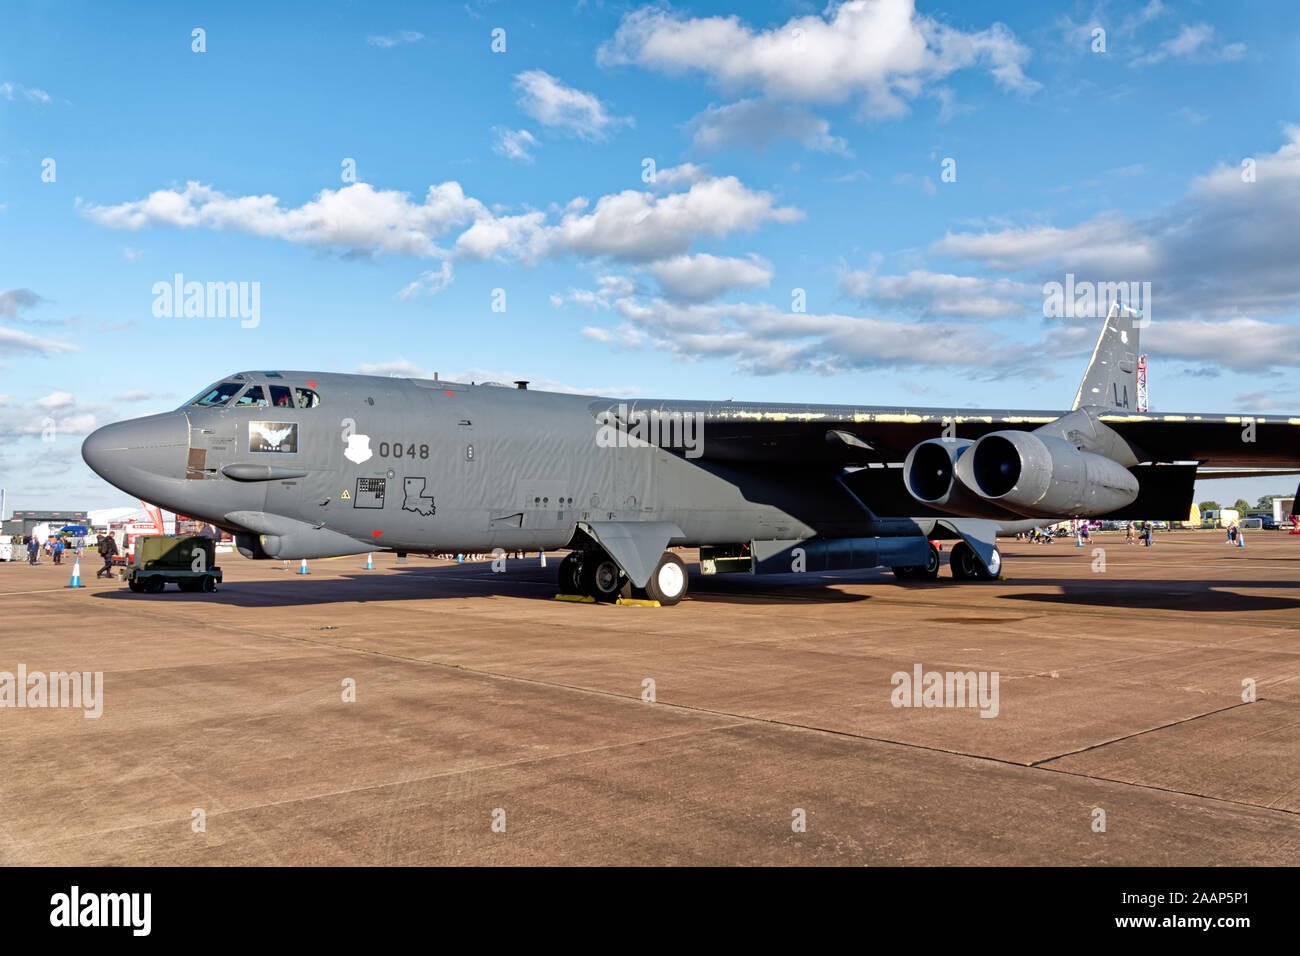 United States Air Force B-52 H Stratofortress, 60-0048/LA, des 2. BW/20 BS, Barksdale Air Force Base in Louisiana Stockfoto